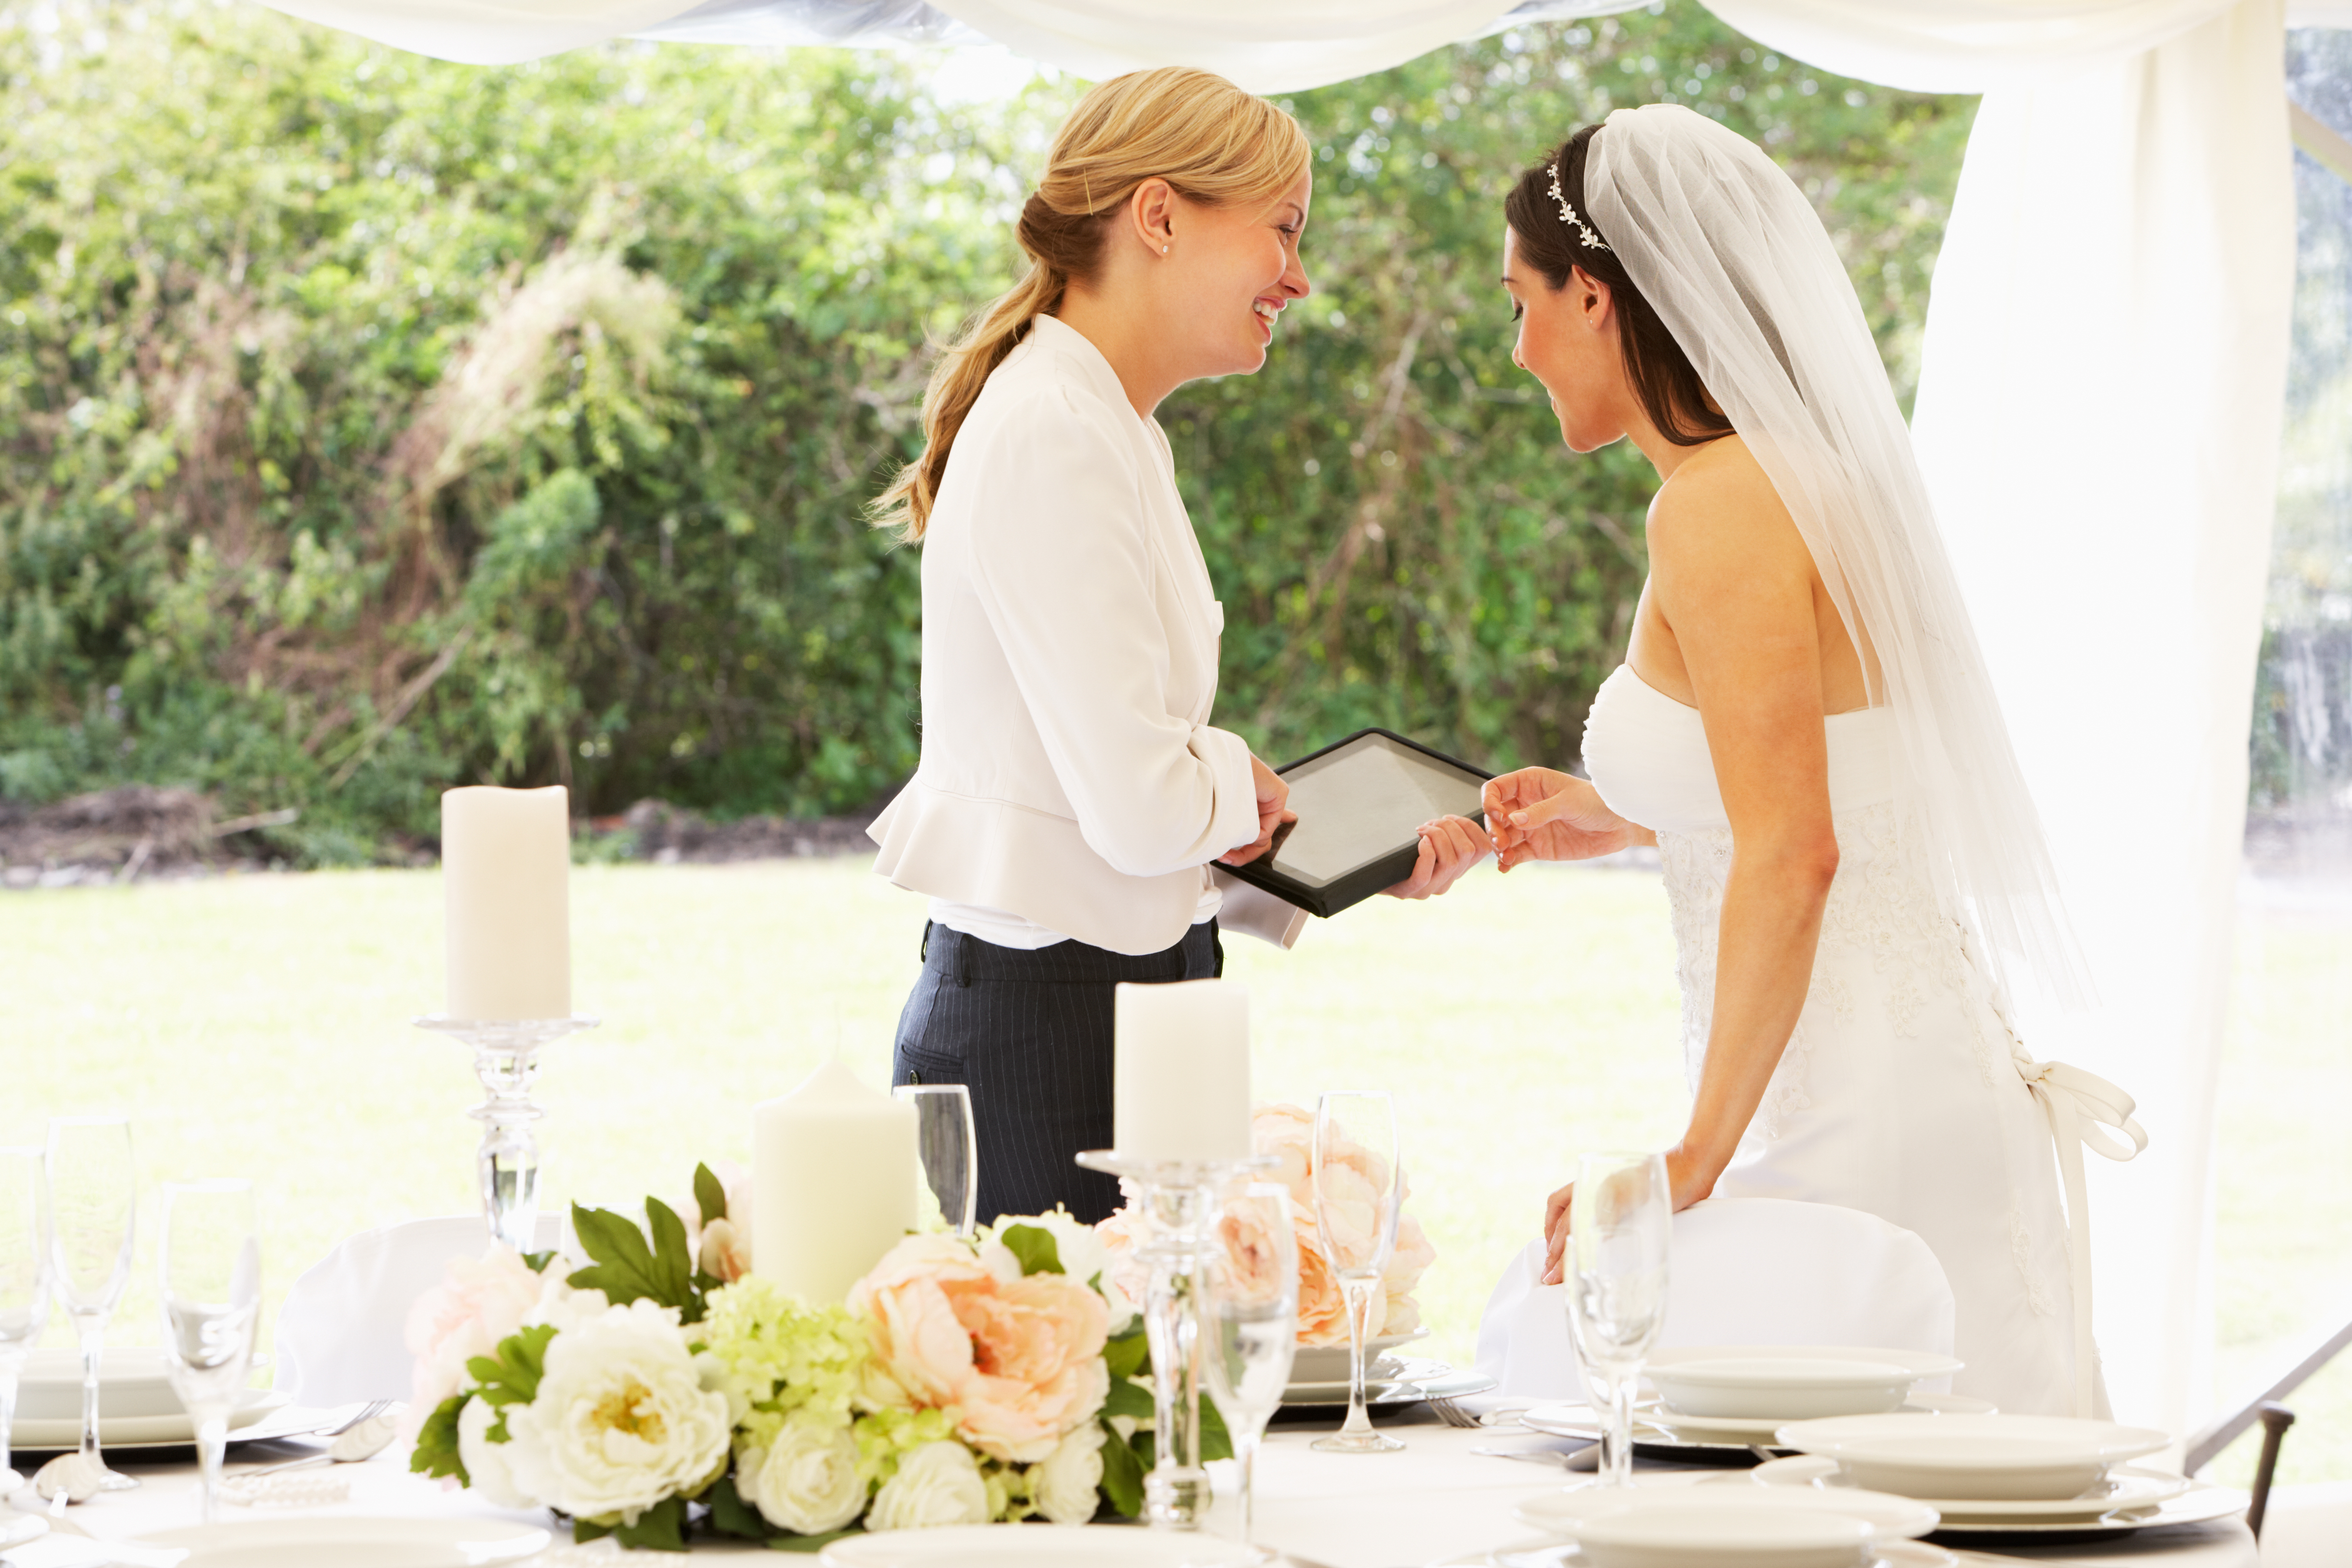 Wedding Planner talking to the bride